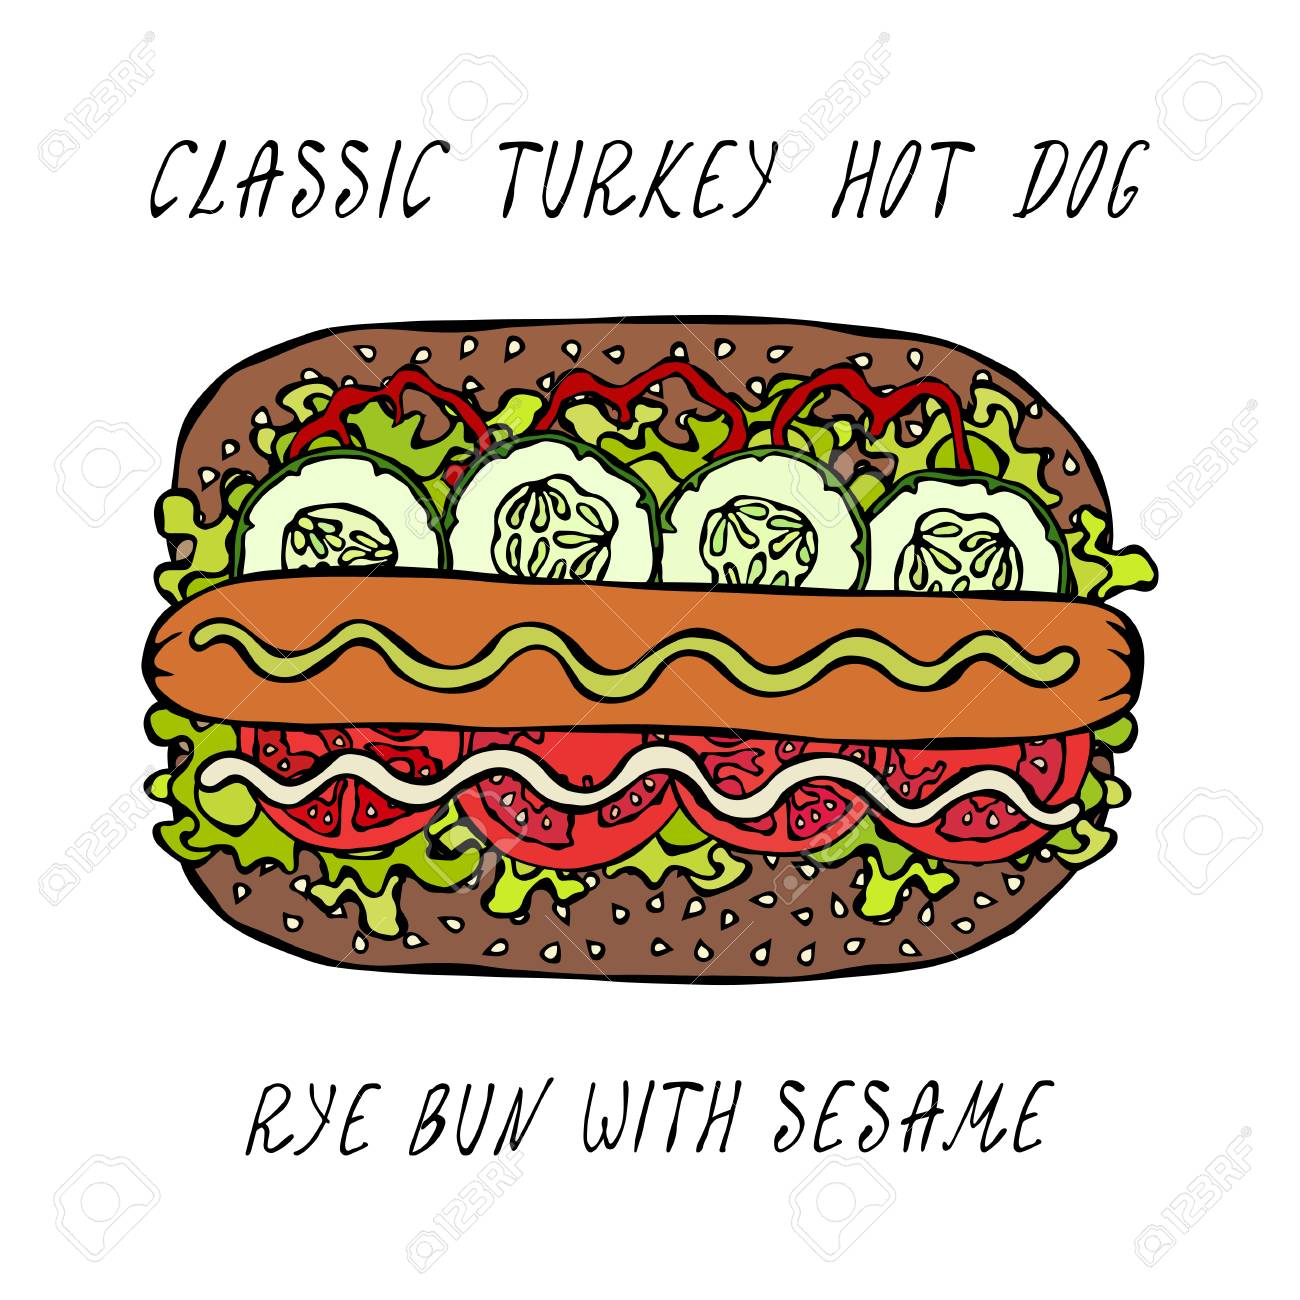 Classic Turkey Hot Dog on a Sesame Bun with Lettuce Salad, Tomato, Cucumber, Mustard, Ketchup. Street Fast Food Collection. Realistic Hand Drawn High Quality Vector Illustration. Doodle Style - 114966647